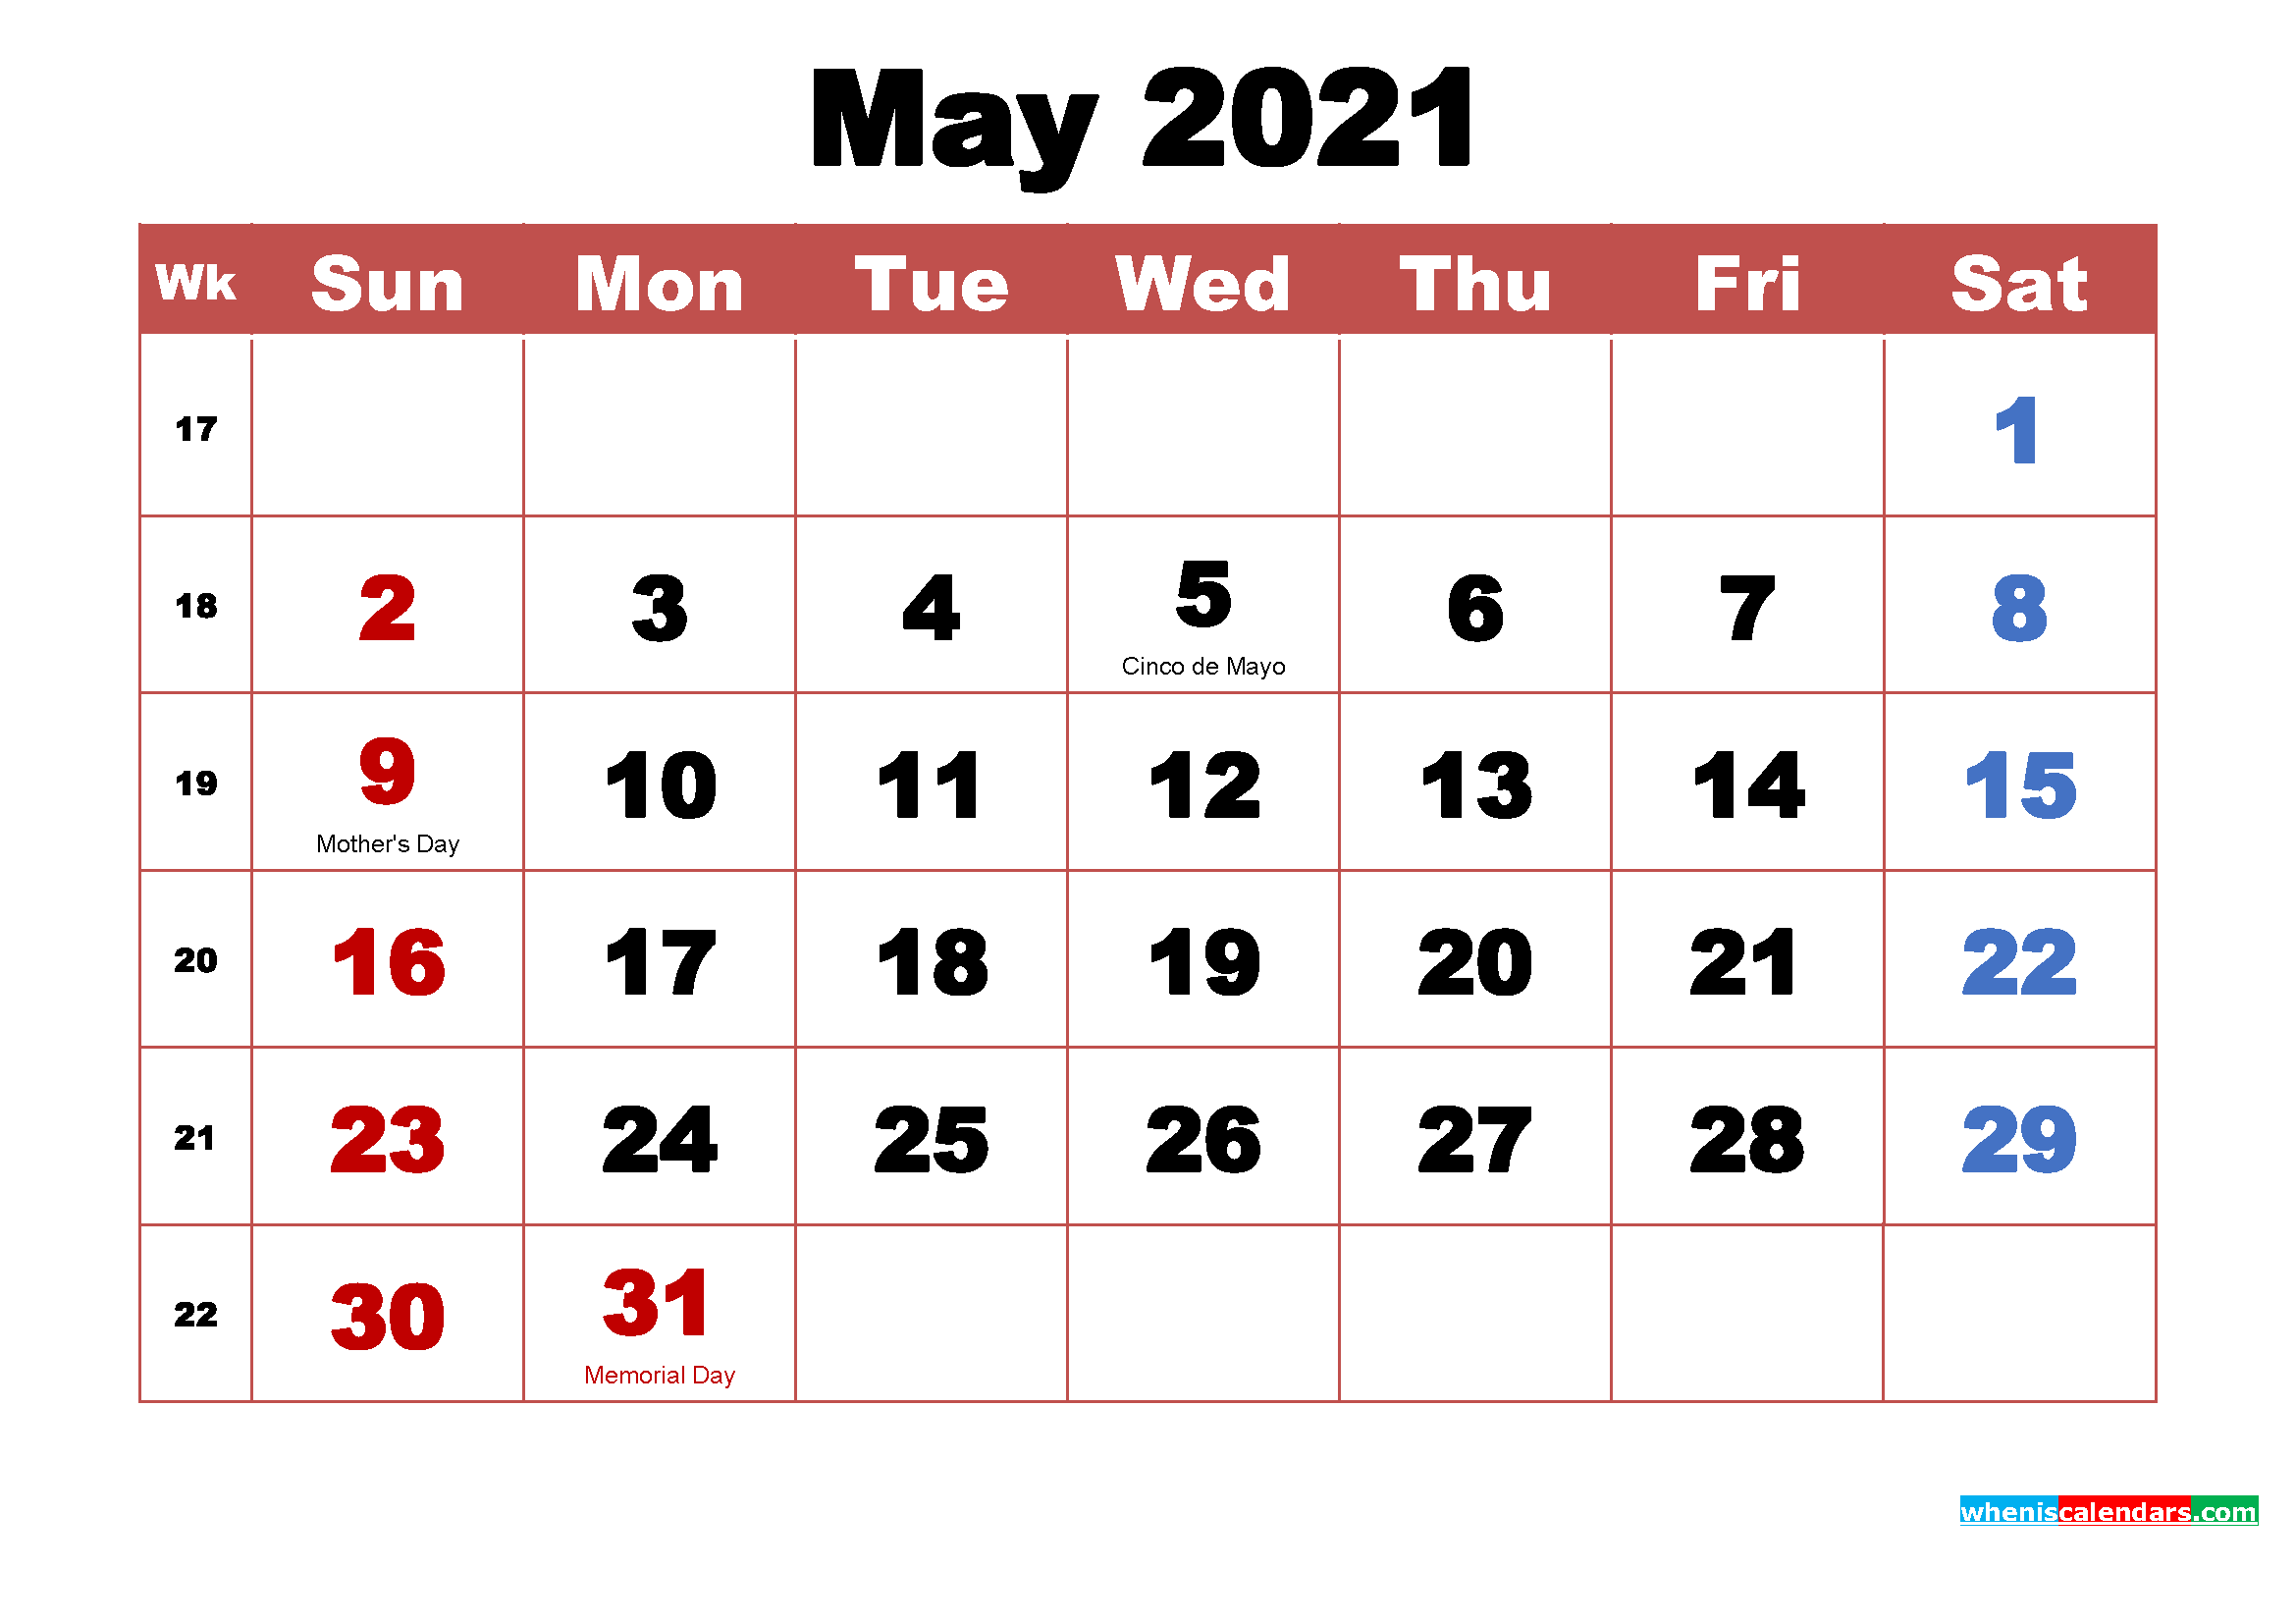 May 2021 Calendar with Holidays Printable